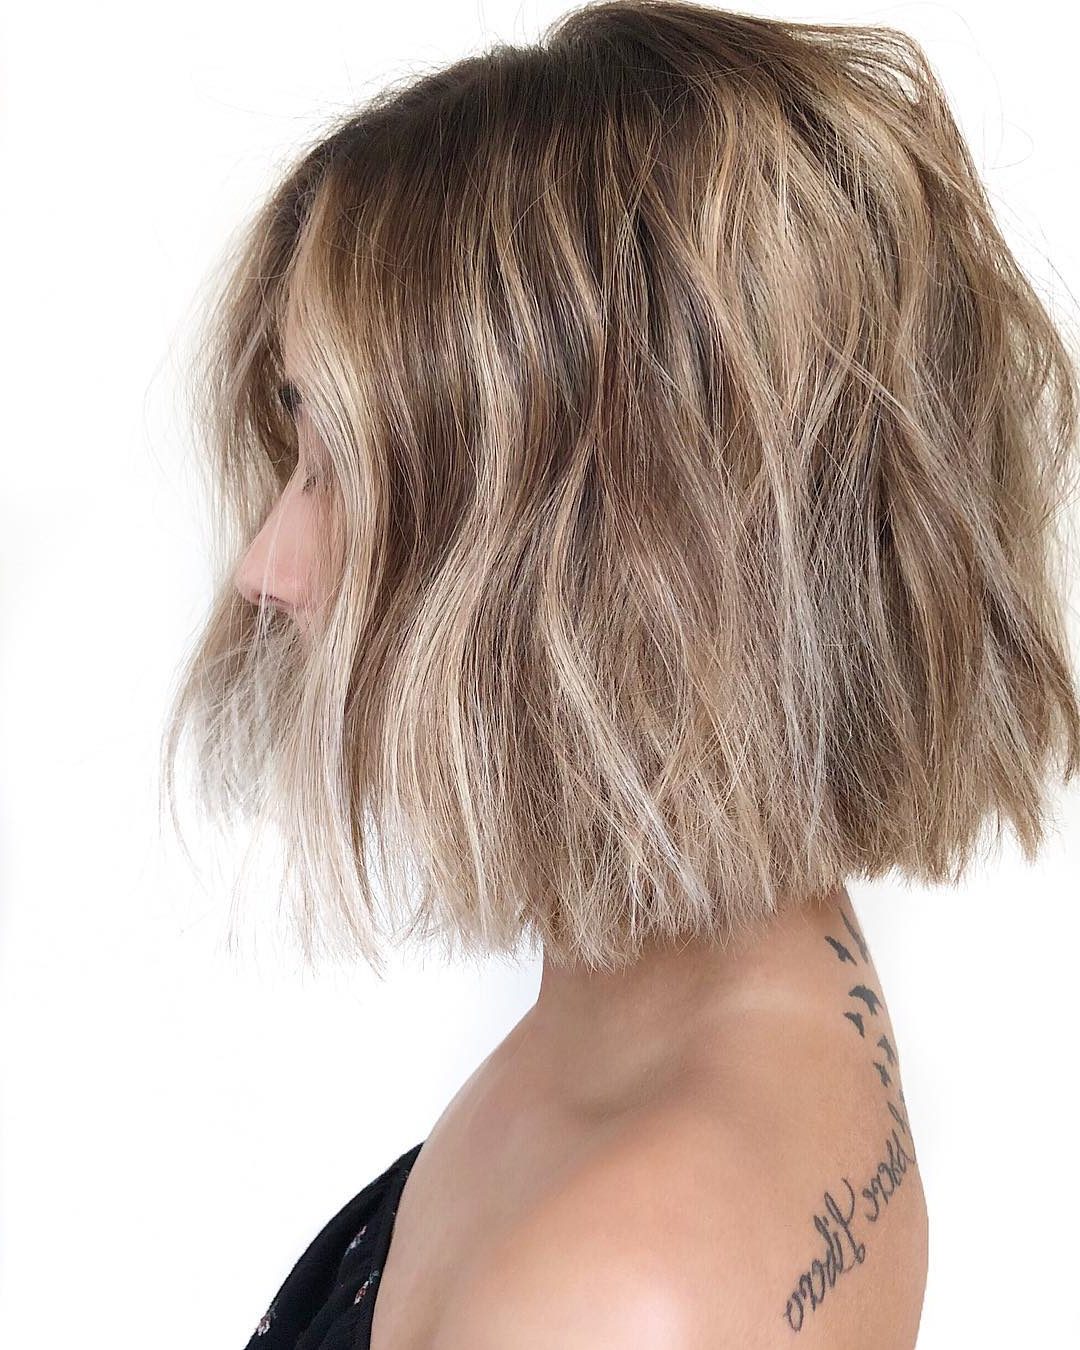 10 Trendy Messy Bob Hairstyles And Haircuts, 2019 Female Short Hair In Most Popular Cute Bangs And Messy Texture Hairstyles (View 1 of 20)